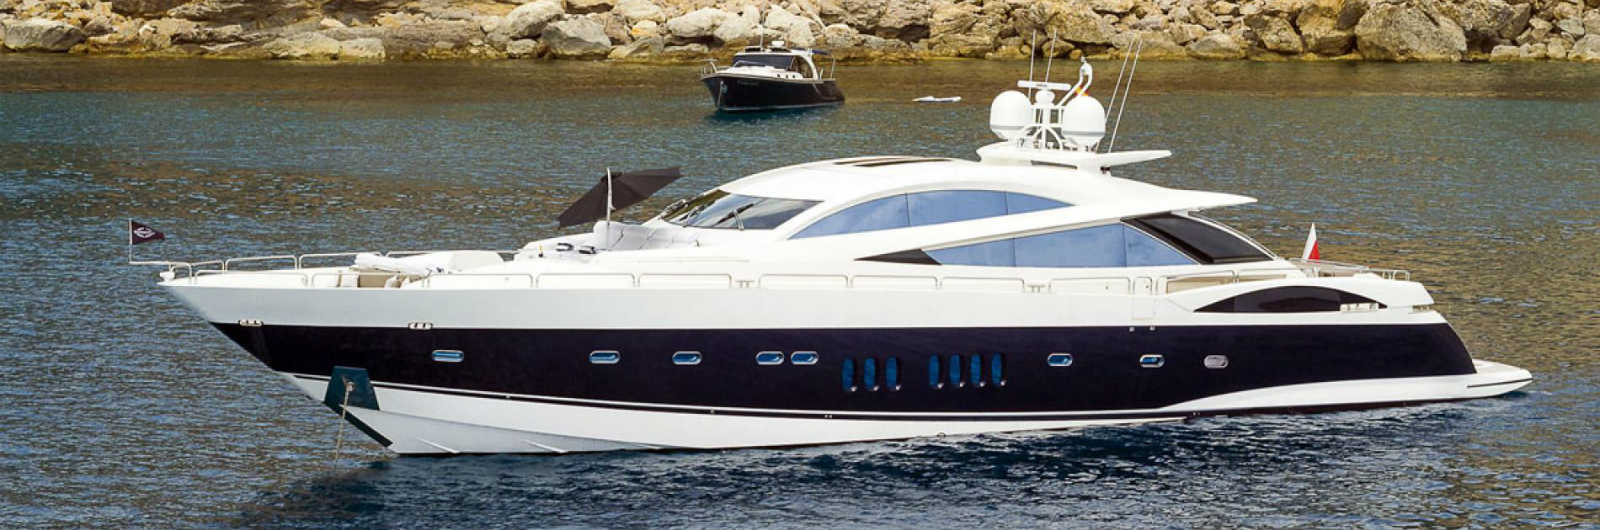 You Can Charter James Bond's Yacht